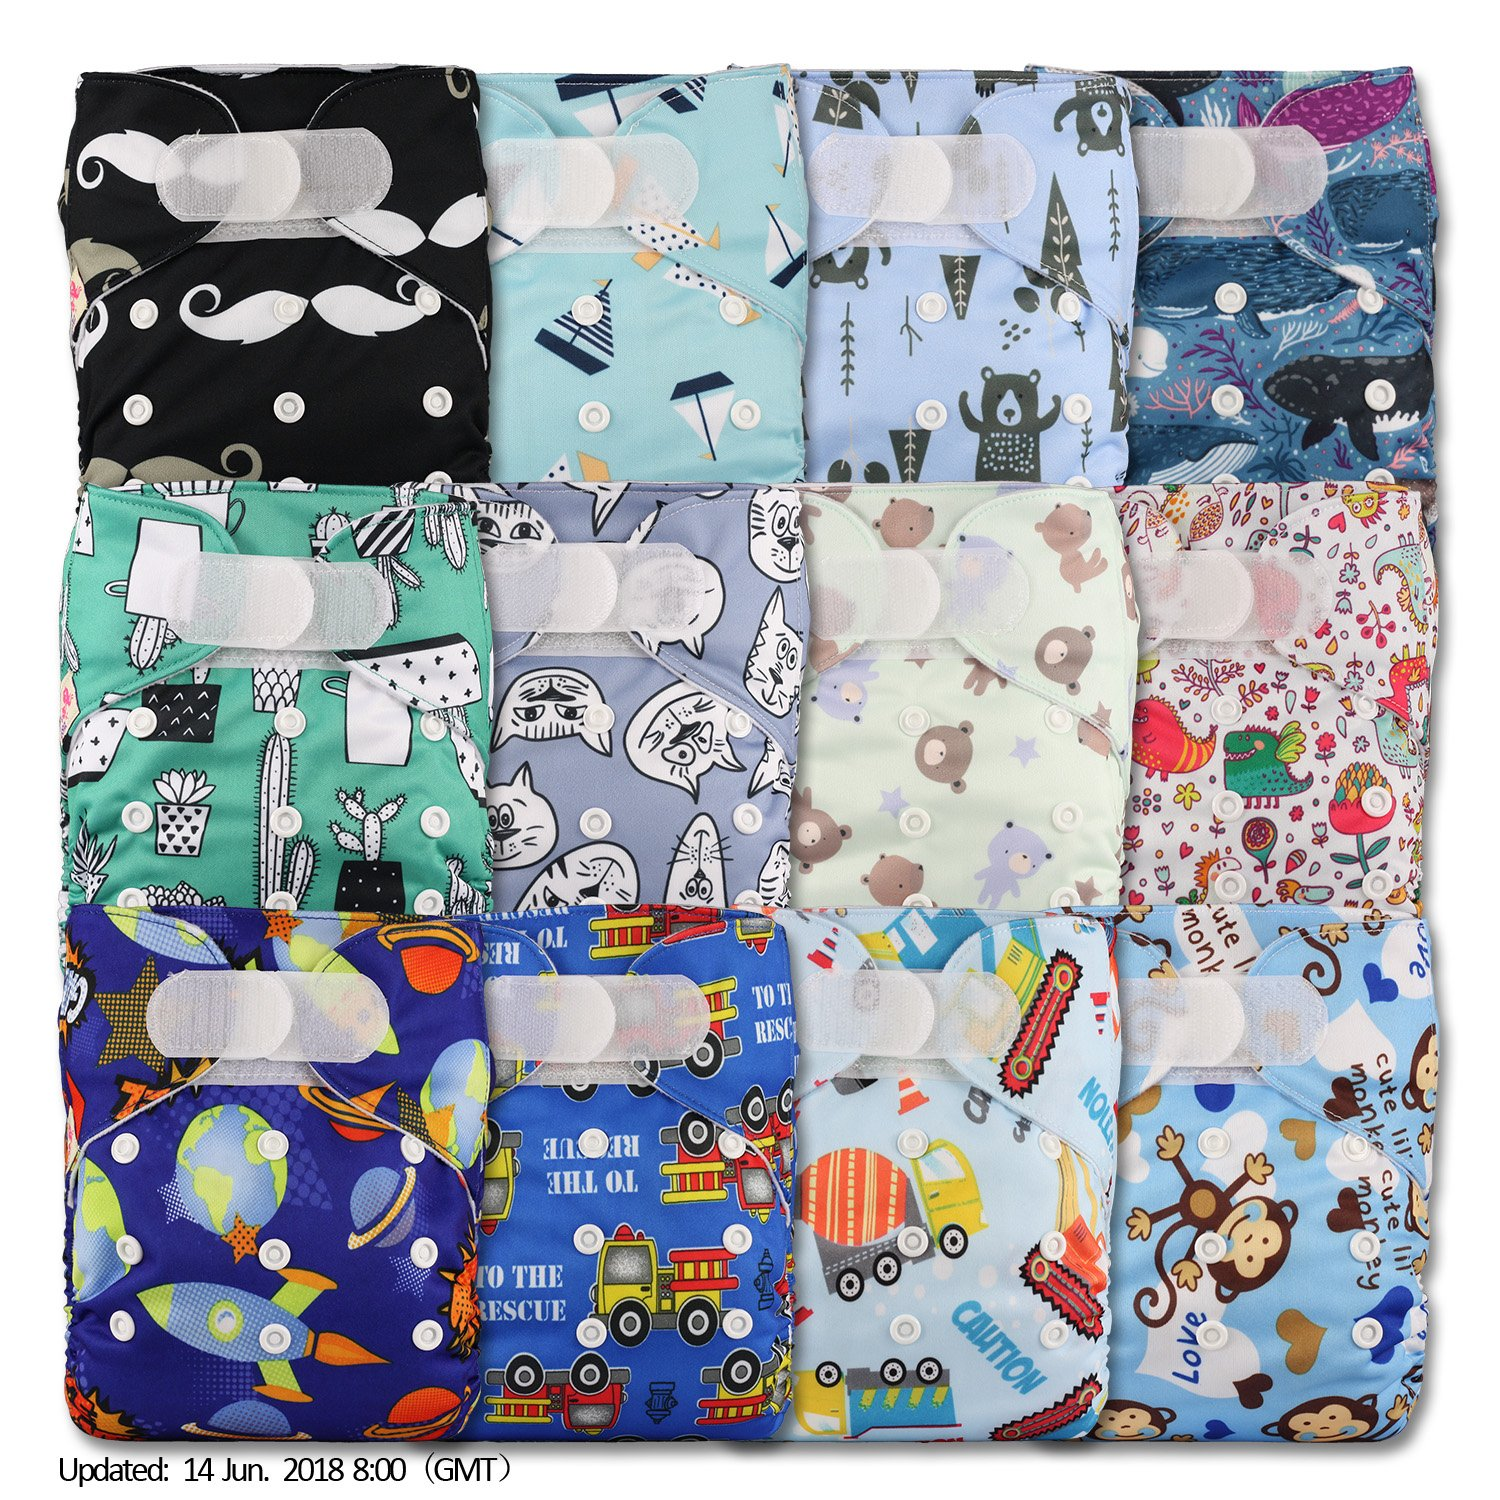 Littles & Bloomz, Reusable Pocket Cloth Nappy, Fastener: Hook-Loop, Set of 12, Patterns 1203, With 24 Bamboo Inserts